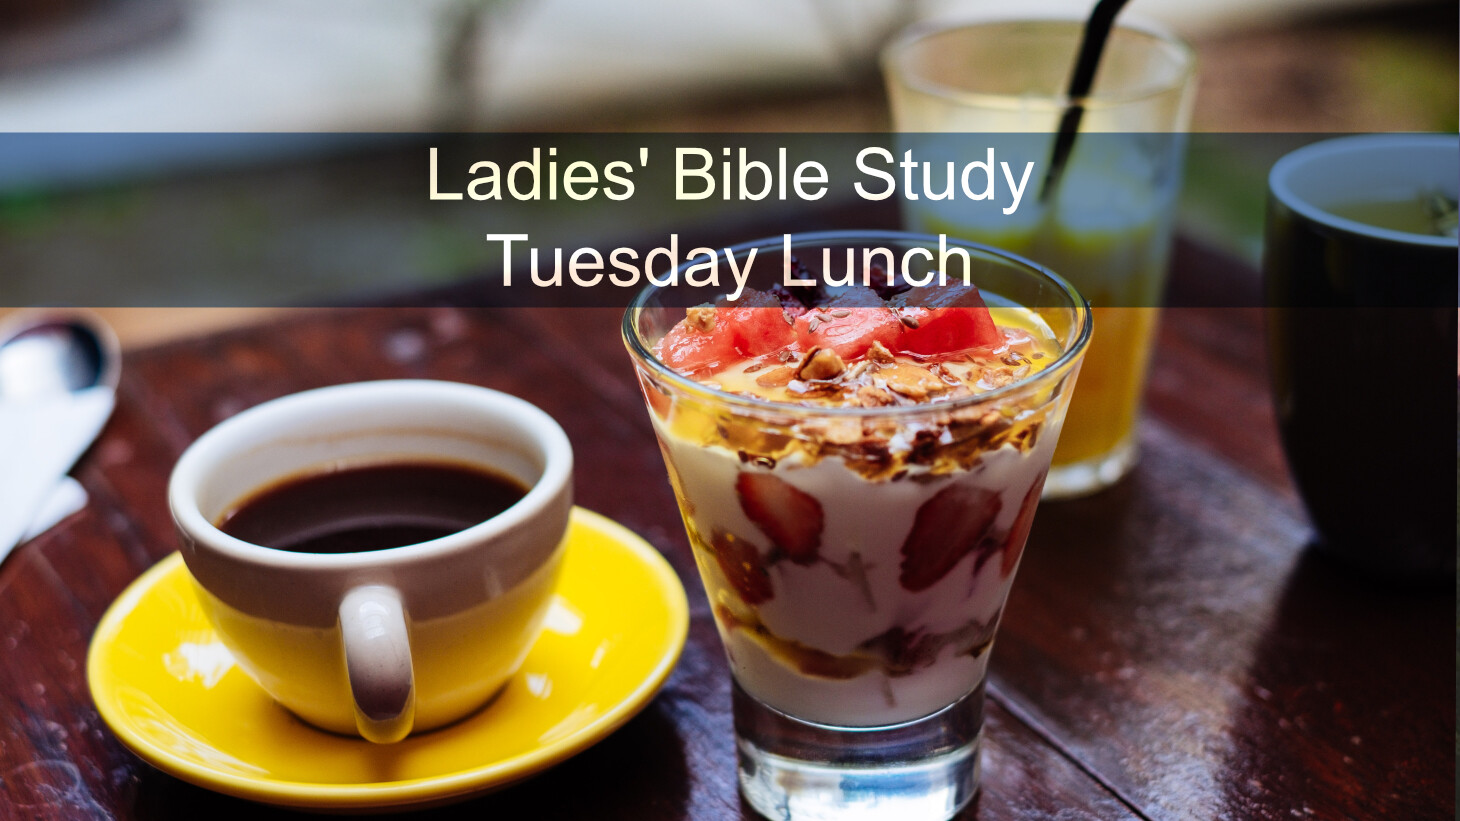 Ladies' Bible Study Lunch